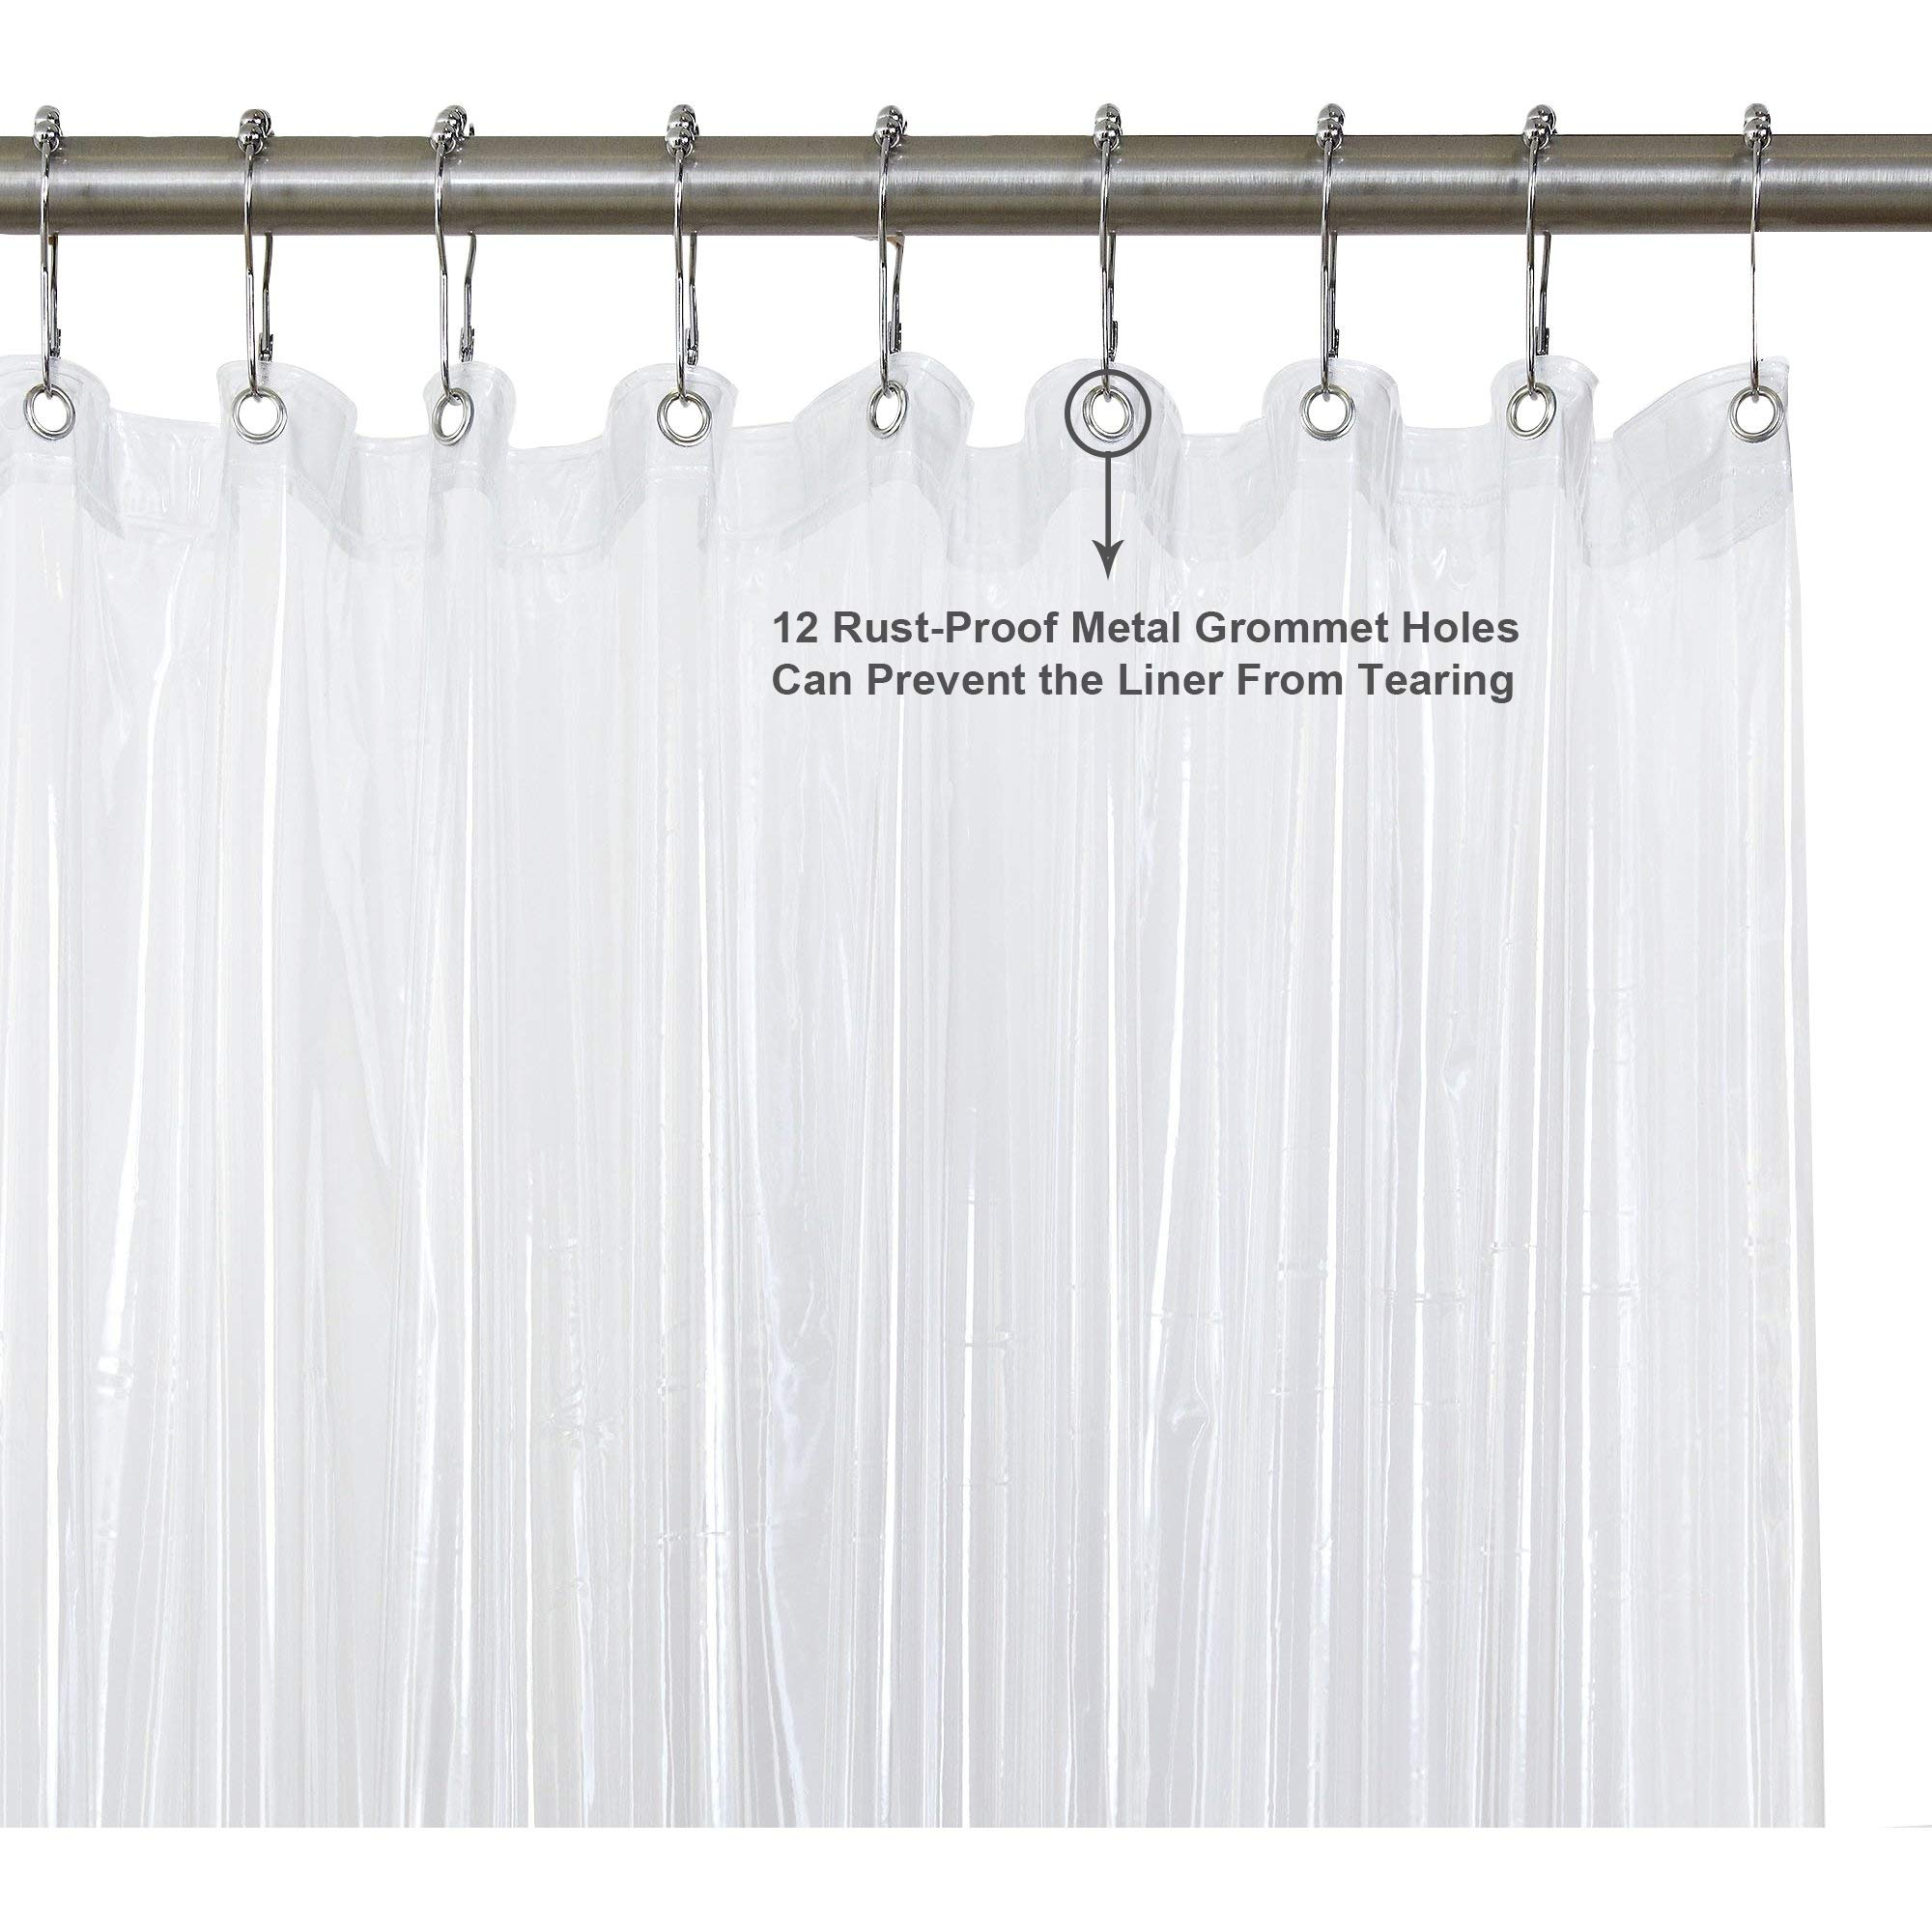 downluxe Kids Shower Curtain Set - Waterproof Curtains for Bathroom by downluxe (Image #4)